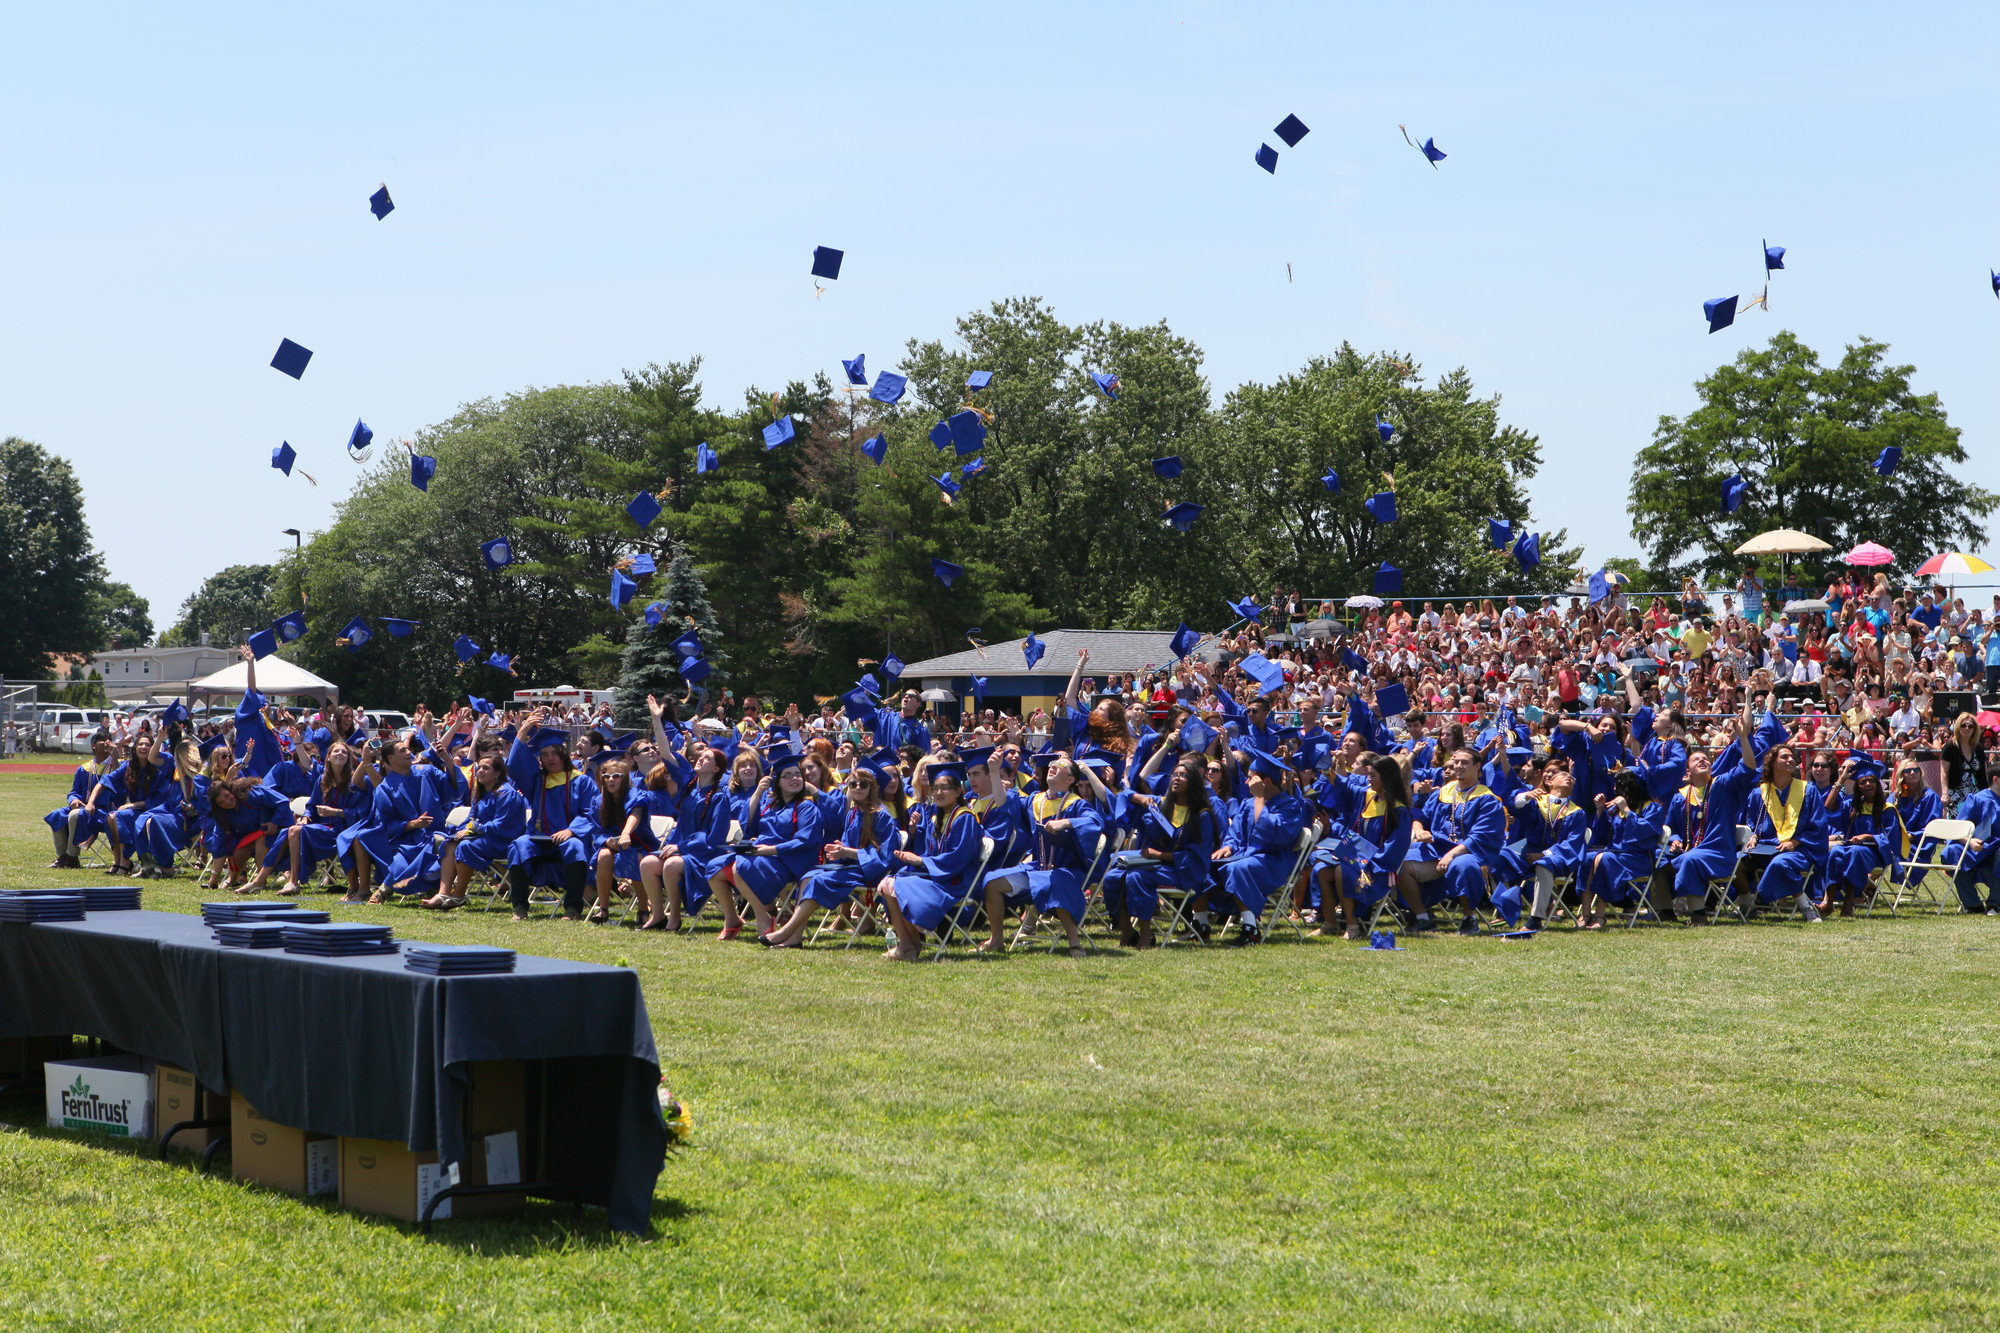 Students threw their caps in celebration as the East Meadow High School graduation ceremony concluded on June 29.